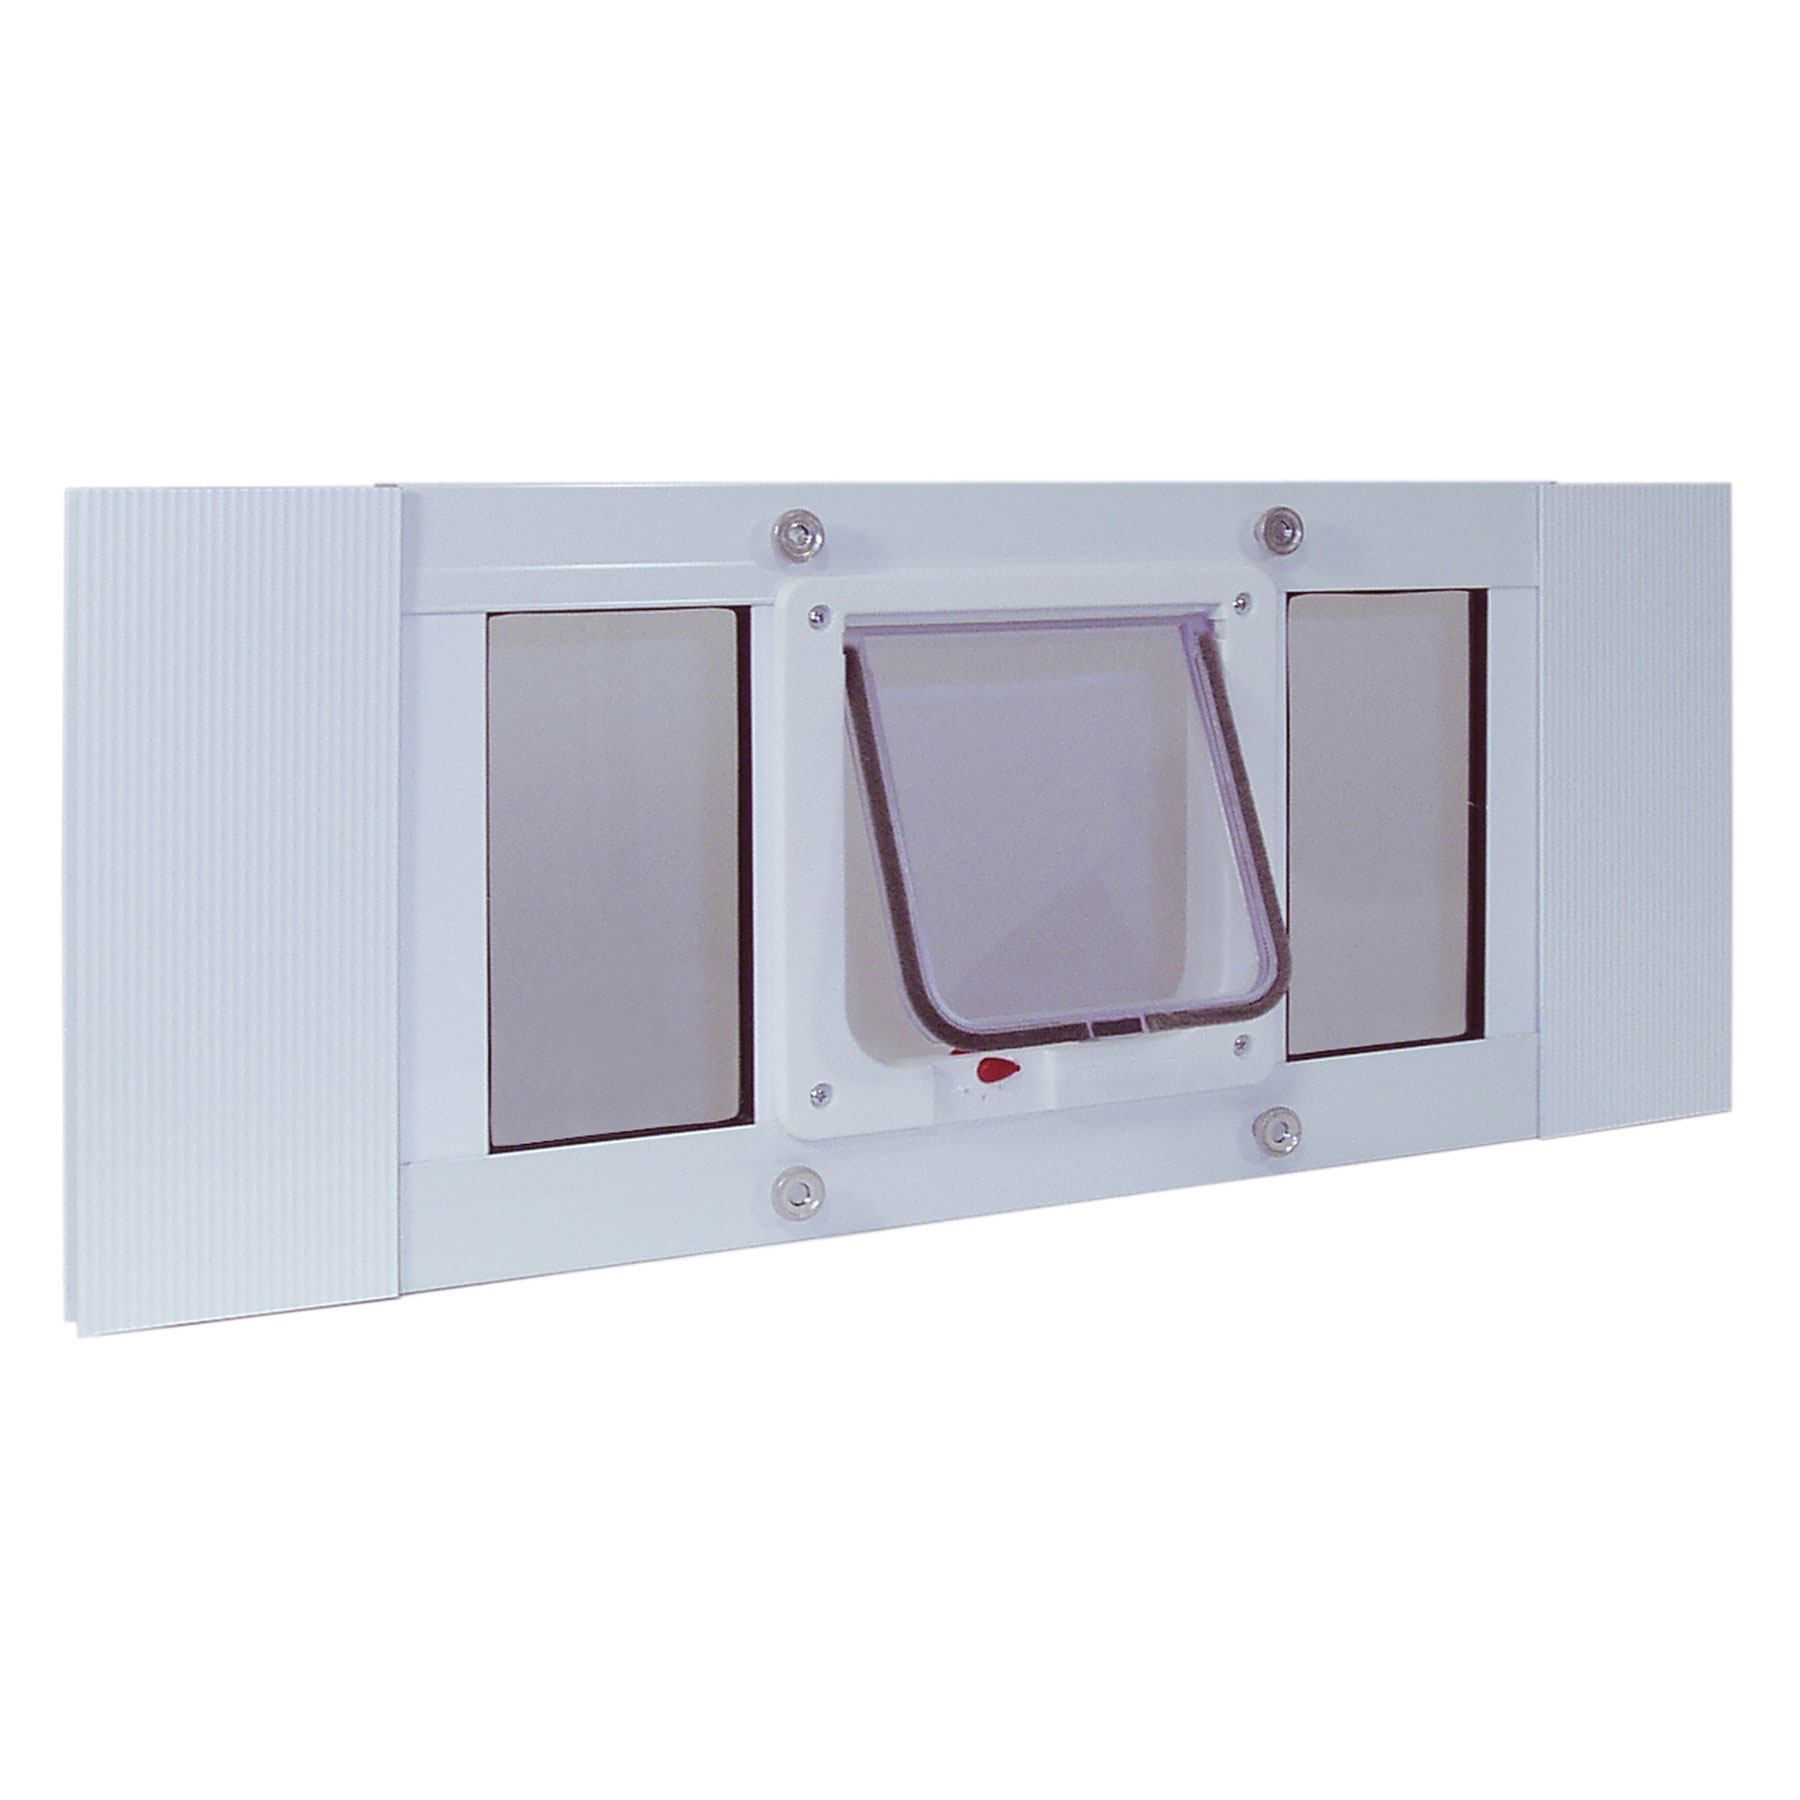 "Ideal Pet Products Aluminum Sash Cat Flap Pet Door Small White 1.25"" x 33"" x 10.63"